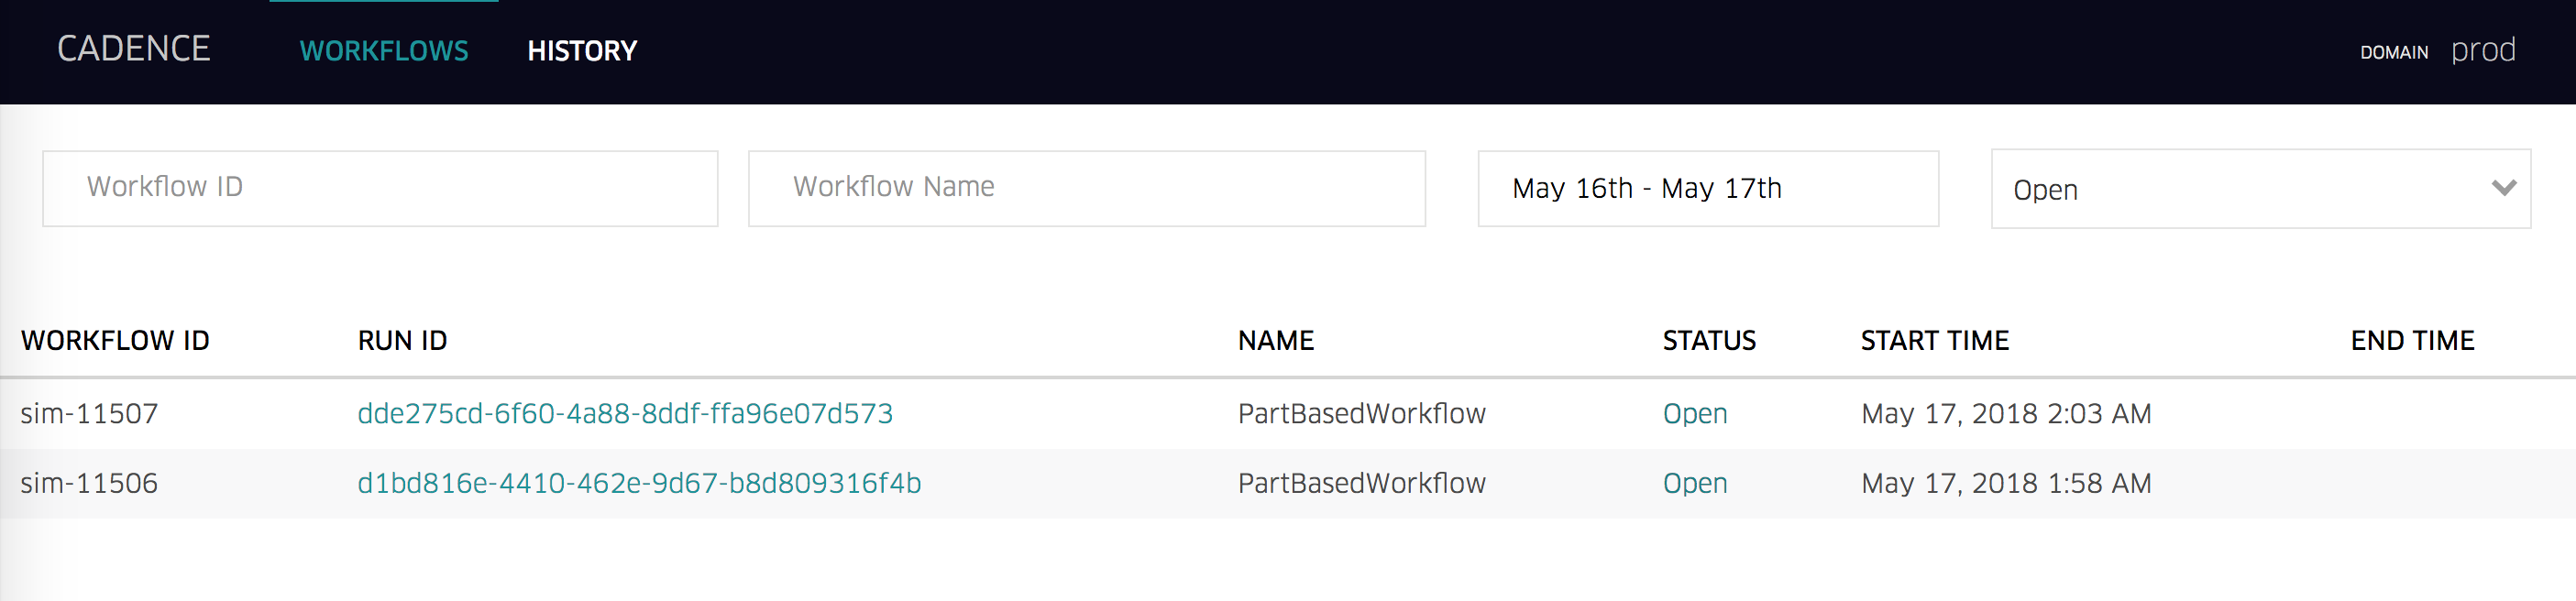 Cadence server queries not returning correct values · Issue